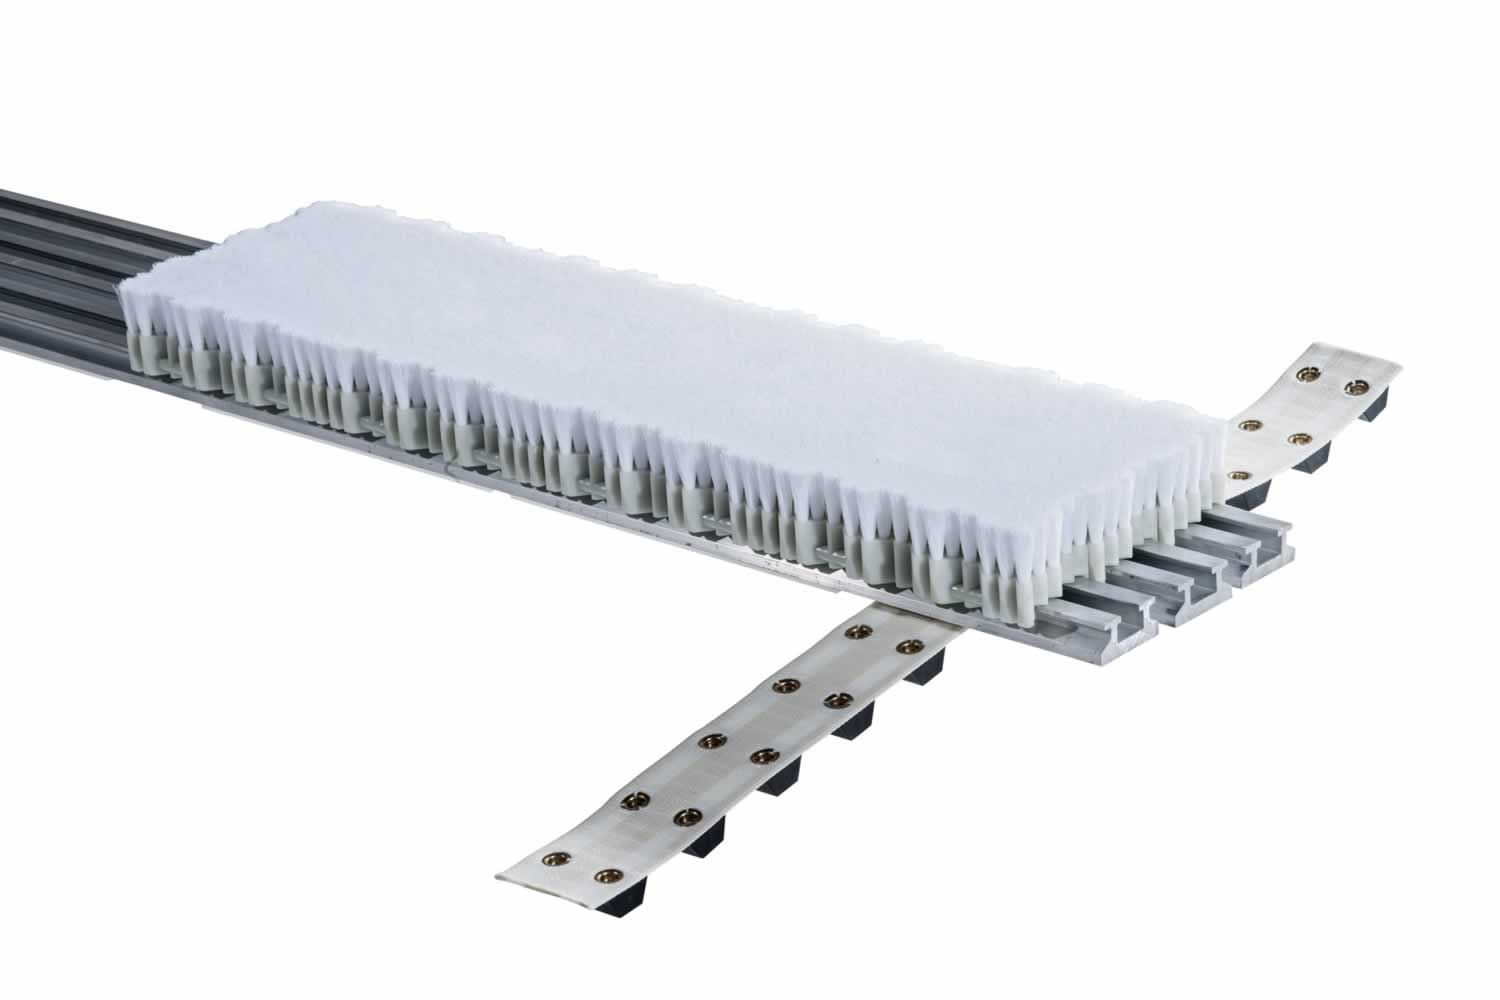 brush-conveyors-for-velour-needle-looms-02